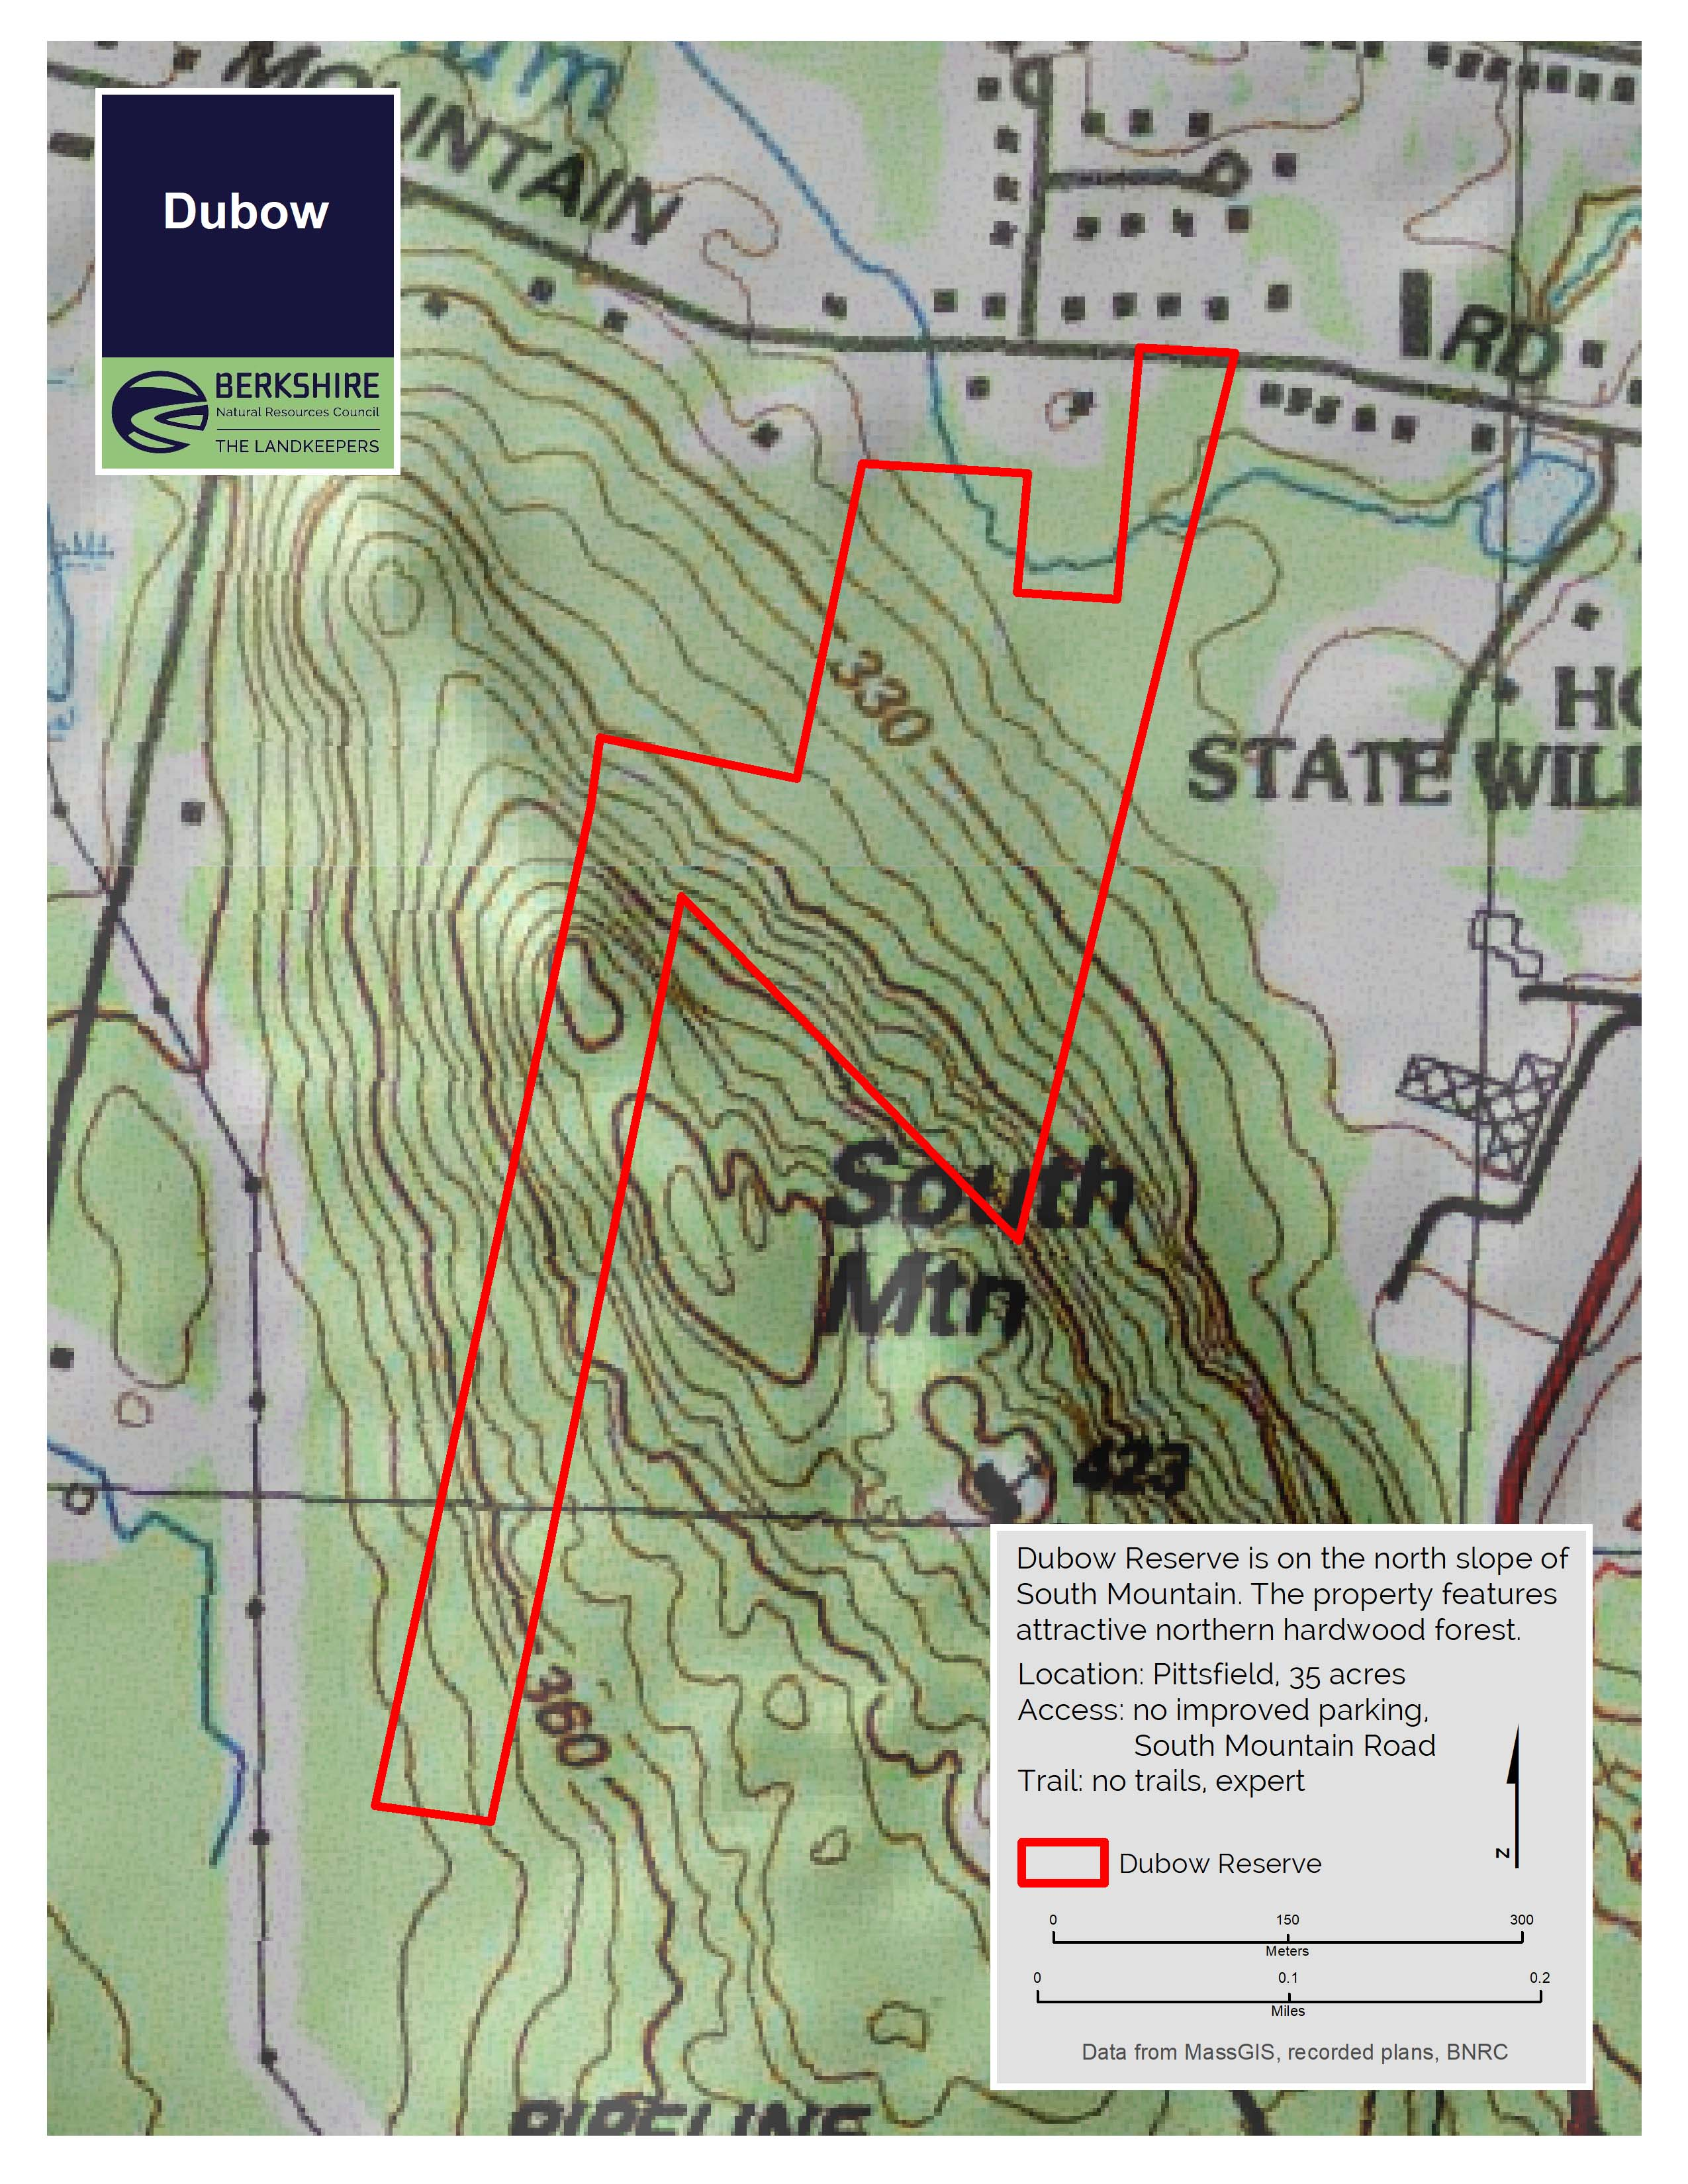 Northern hardwood forests provide habitat for numerous wildlife species that. Dubow Berkshire Natural Resources Council